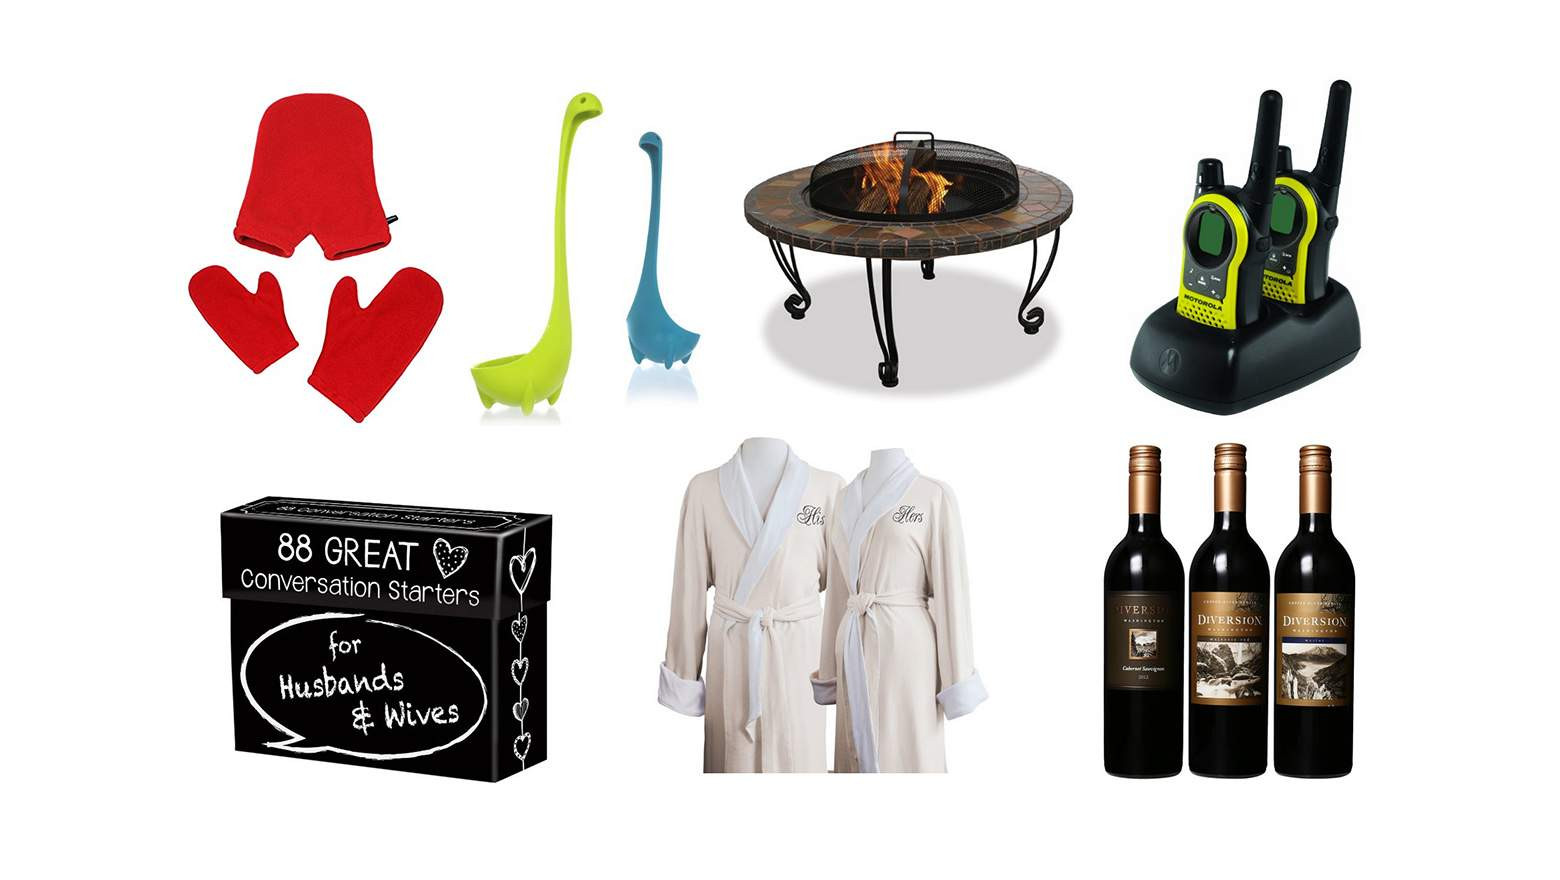 Best ideas about Great Gift Ideas For Couples . Save or Pin Christmas Gifts for Couples Top 10 Best Ideas Now.